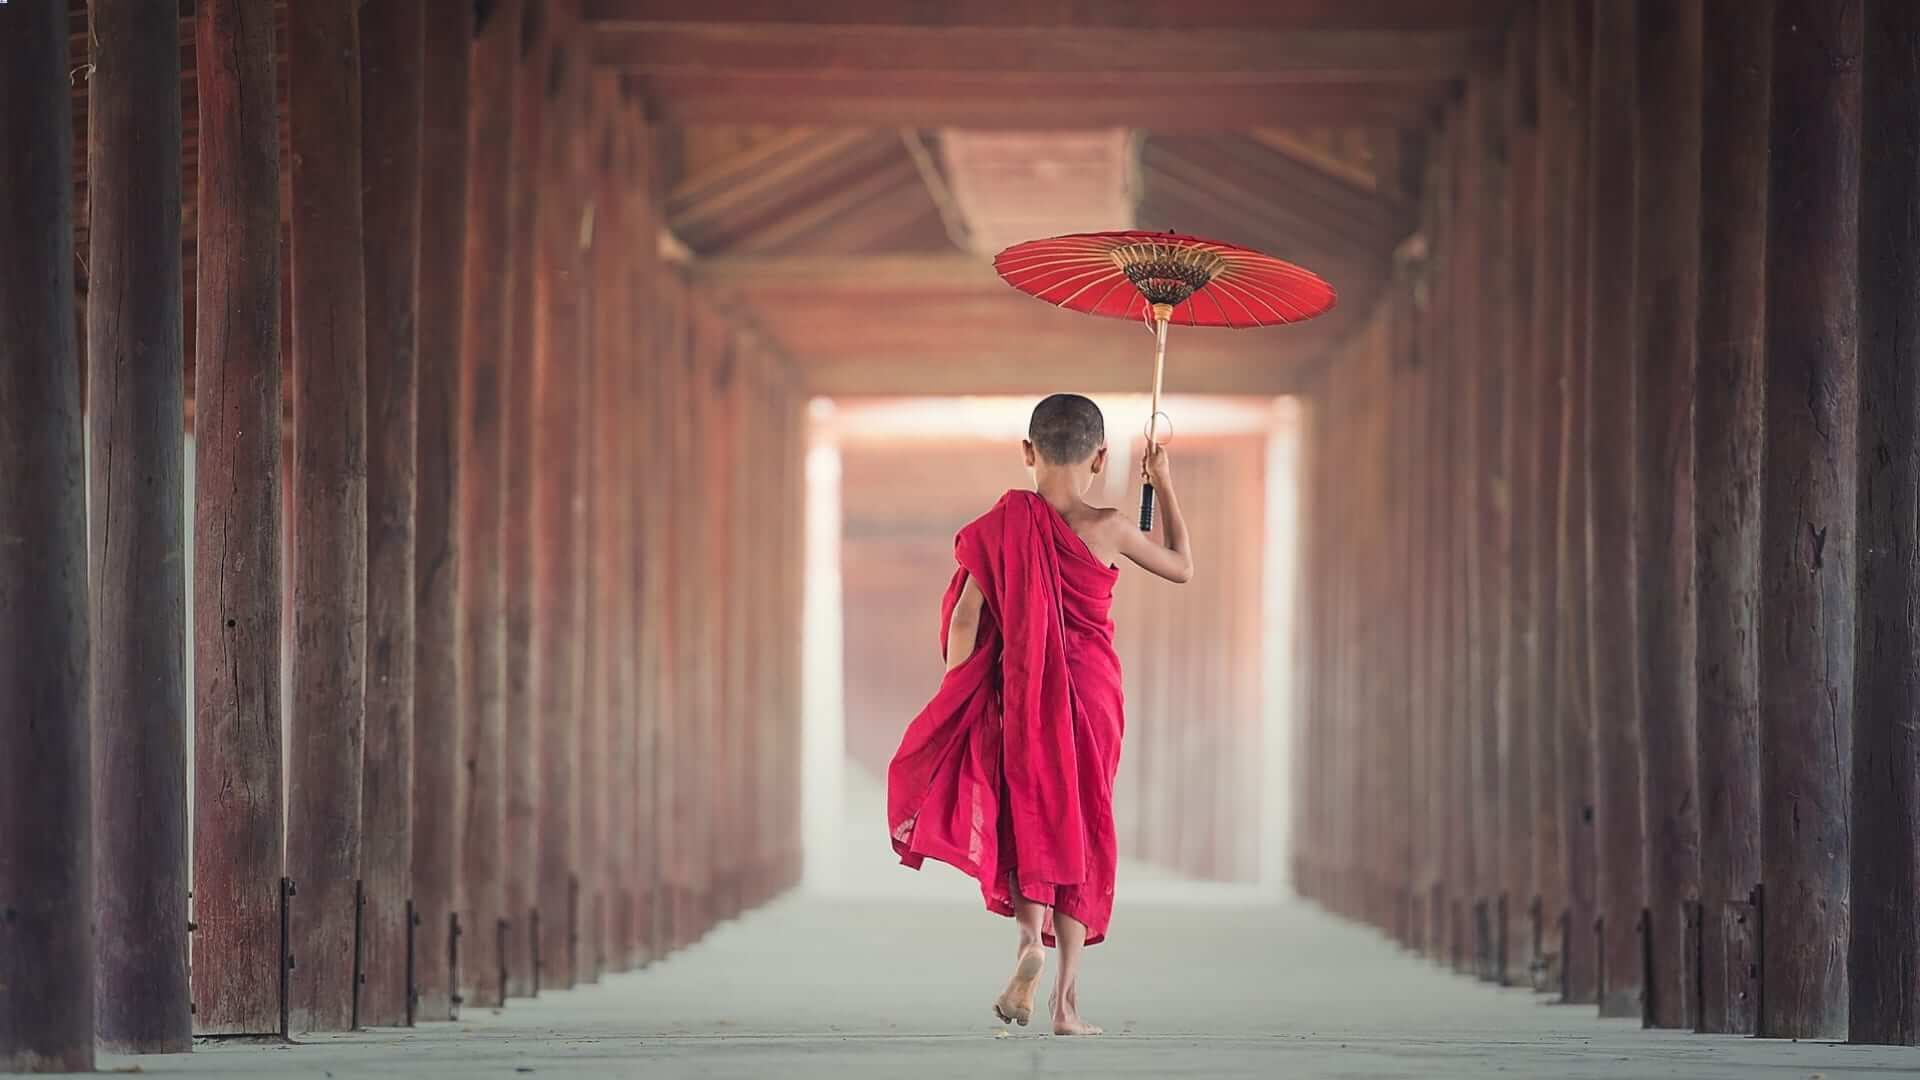 A boy wearing red clothes and holding a red umbrella is walking through a temple in Asia.